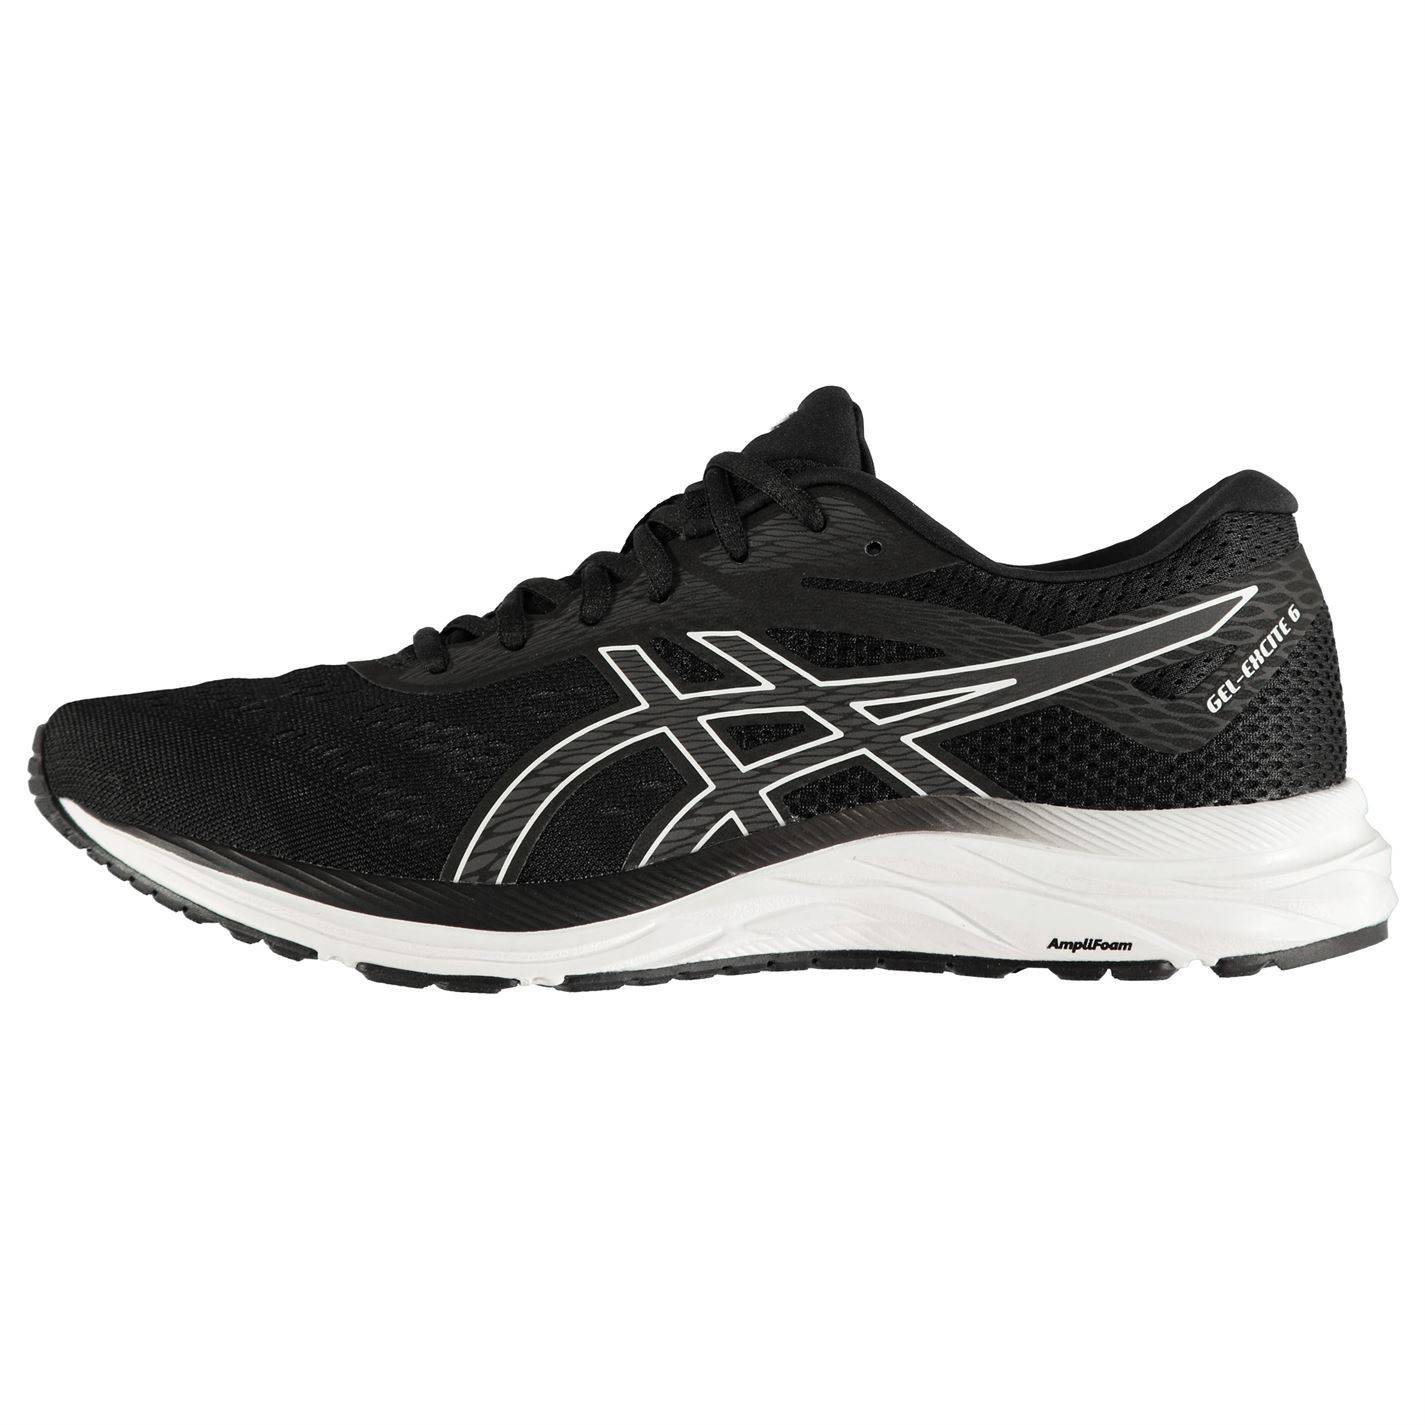 Gel 6 Trote Excite Hombre Running Zapatillas Asics Fitness fTxSwdqTH